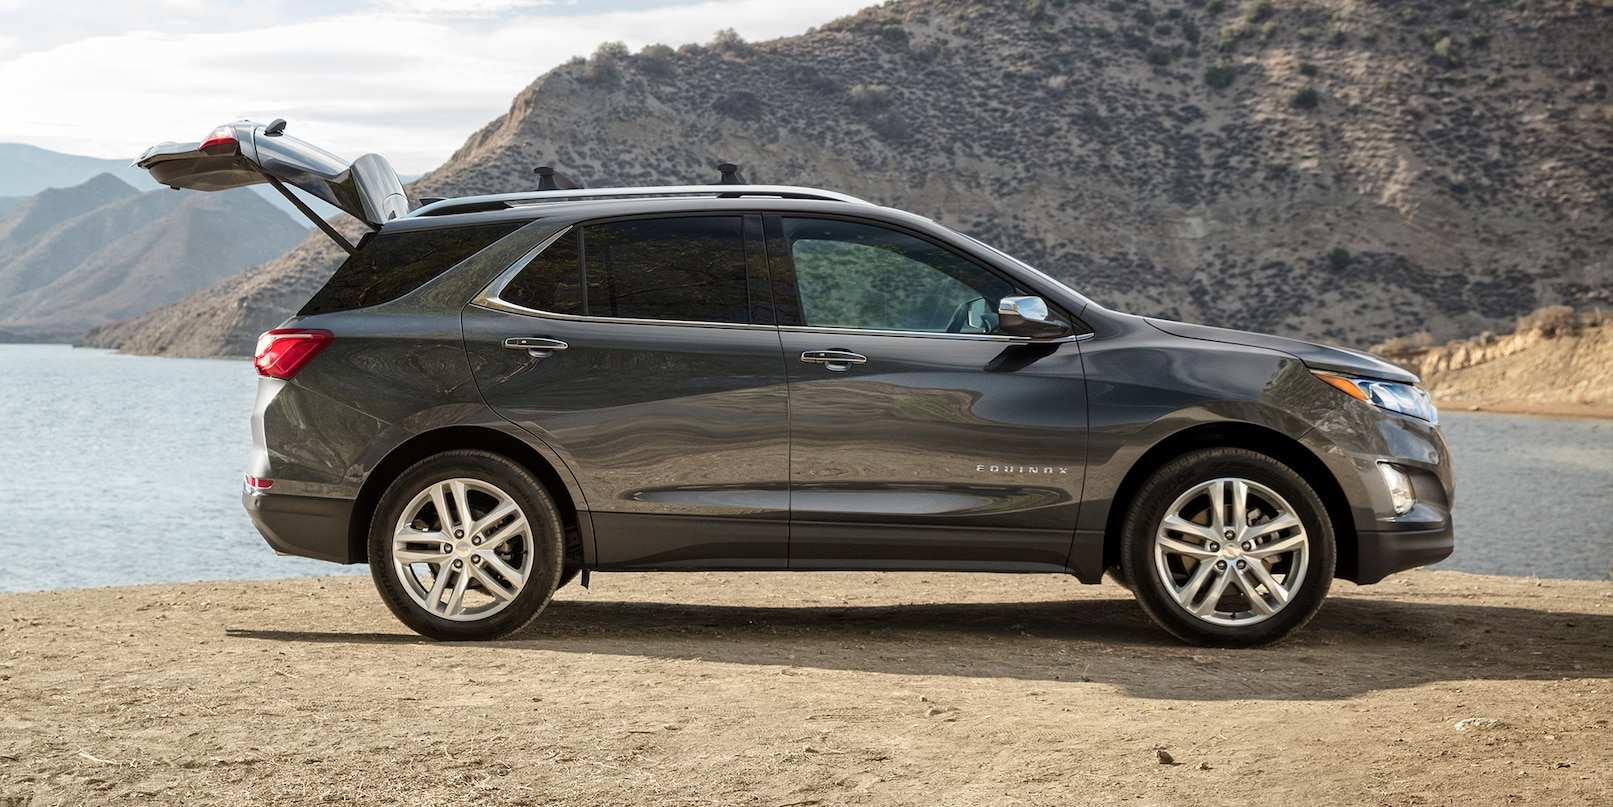 76 The Best 2019 Chevrolet Equinox Overview